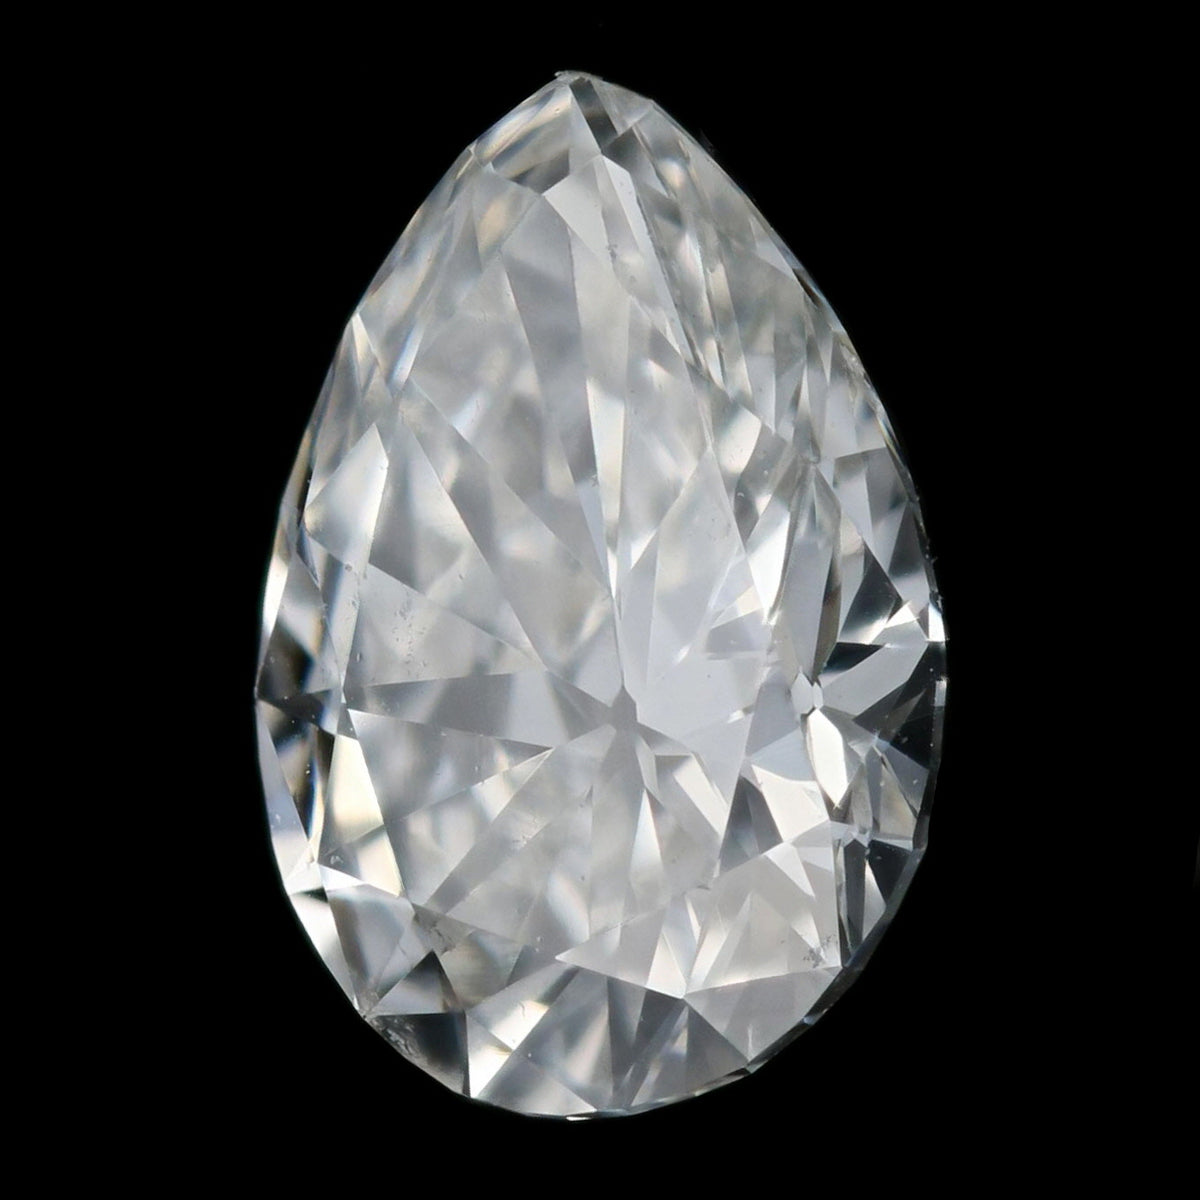 .59ct Loose Diamond Pear GIA